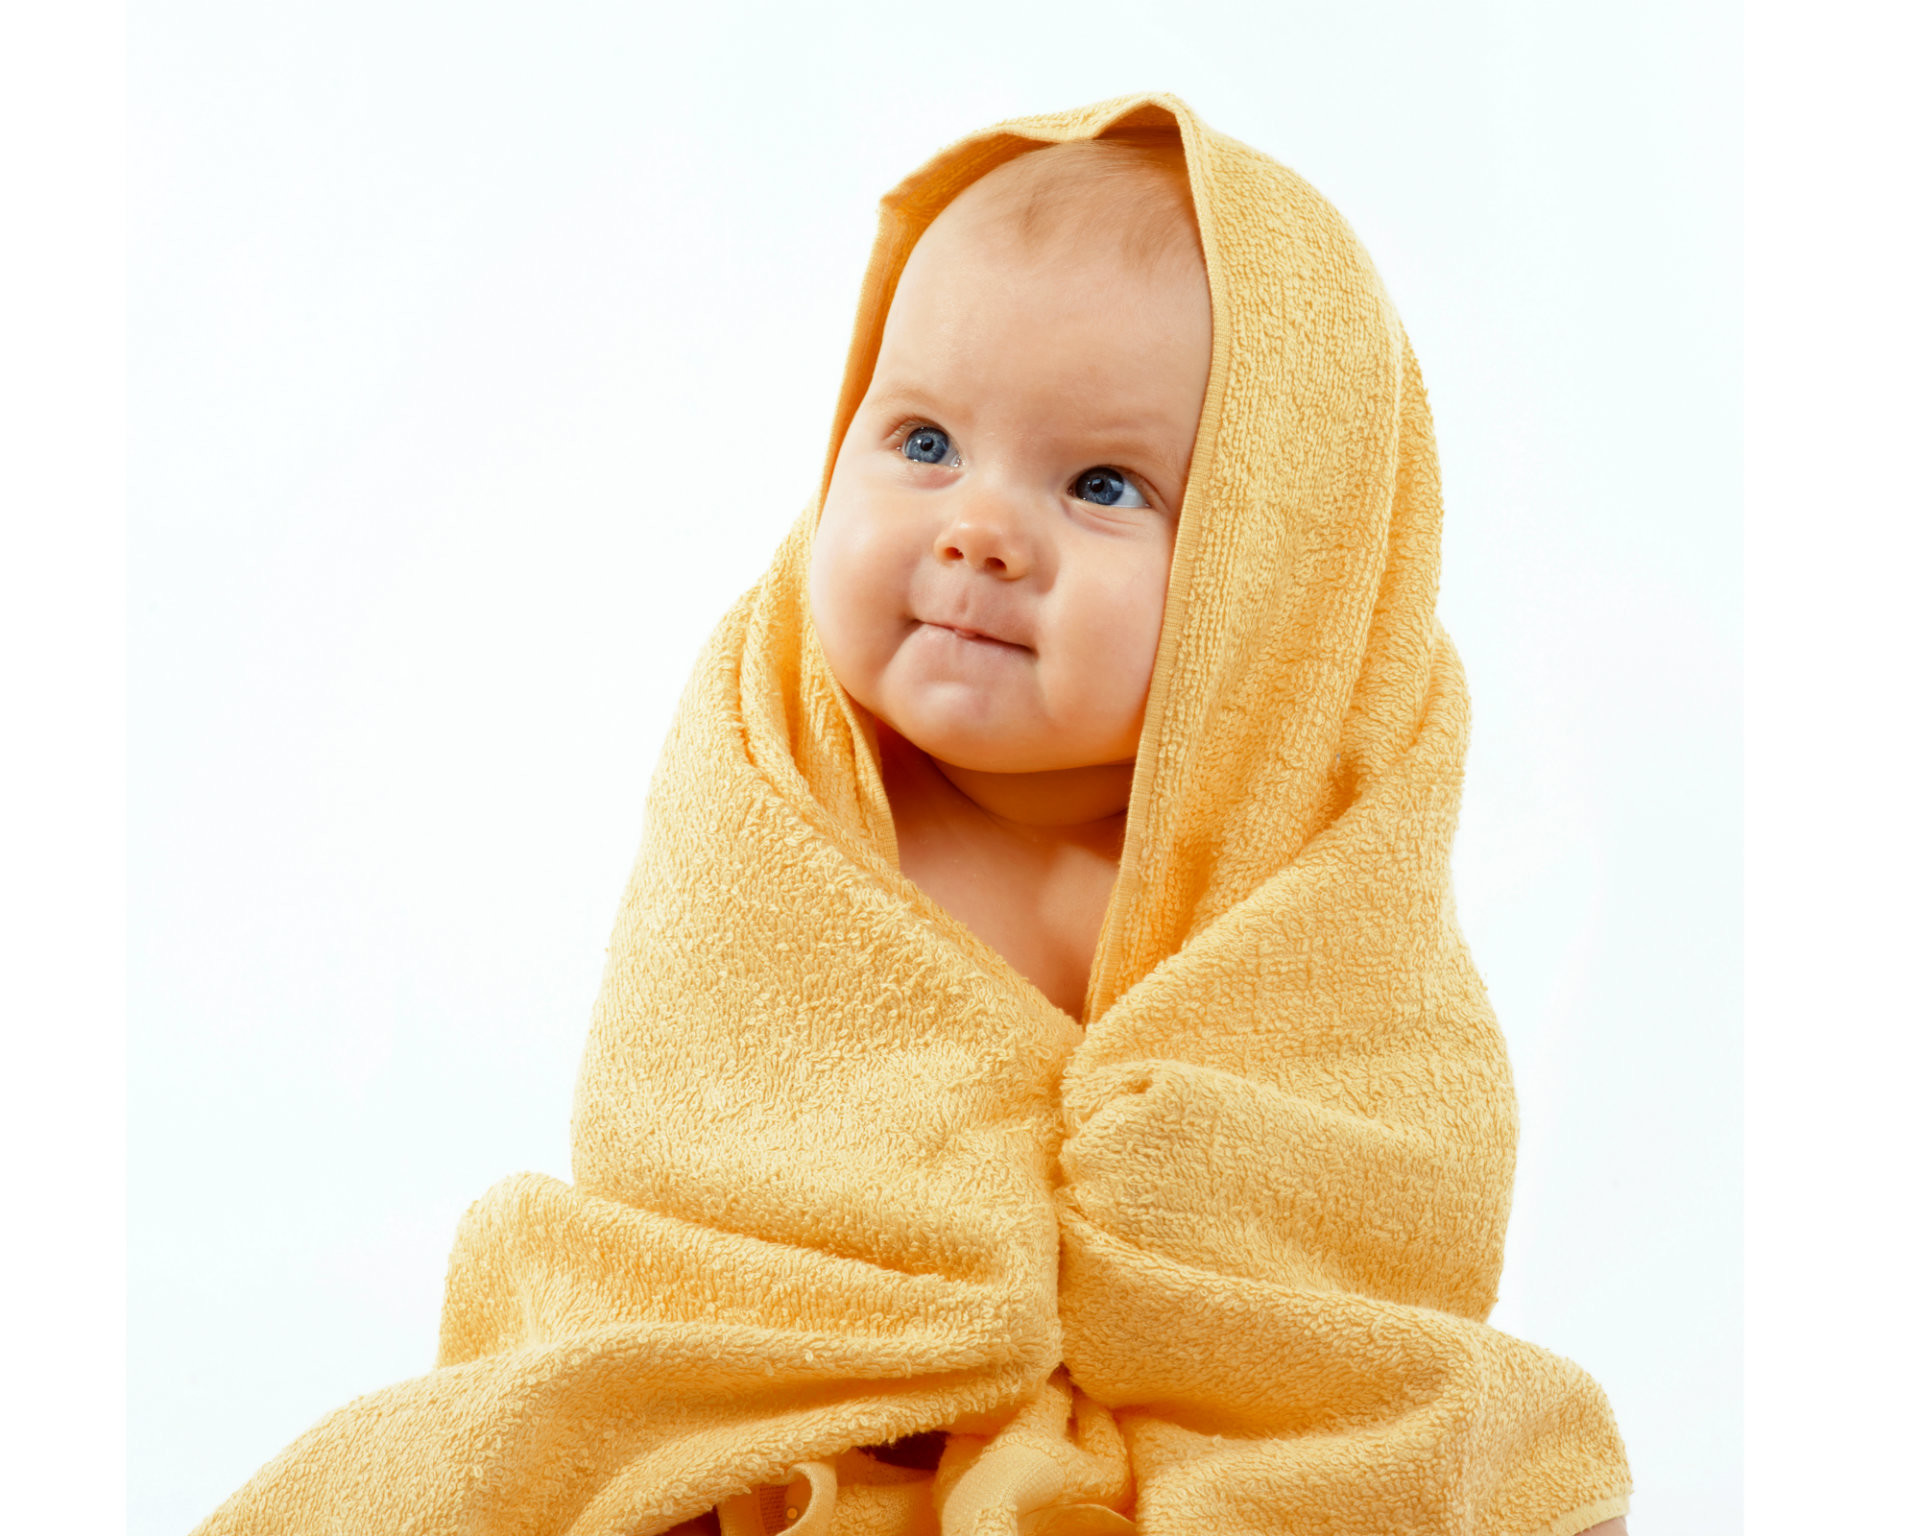 1920x1536 Very Cute Baby Boy Wallpapers · Download · 1920x1200 ...